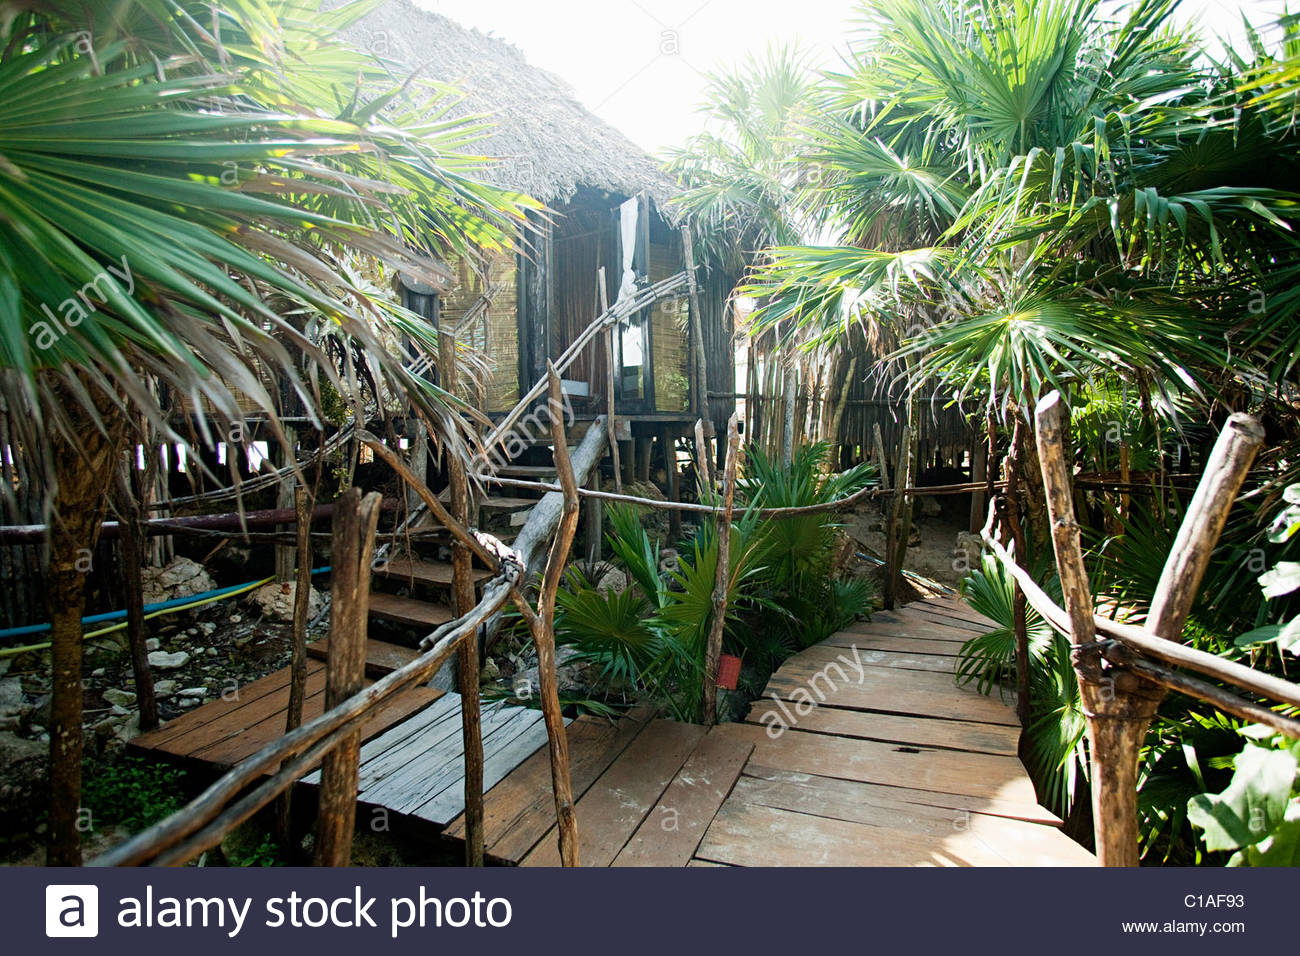 Beach hut decking and palm trees Stock Photo: 35266927 - Alamy